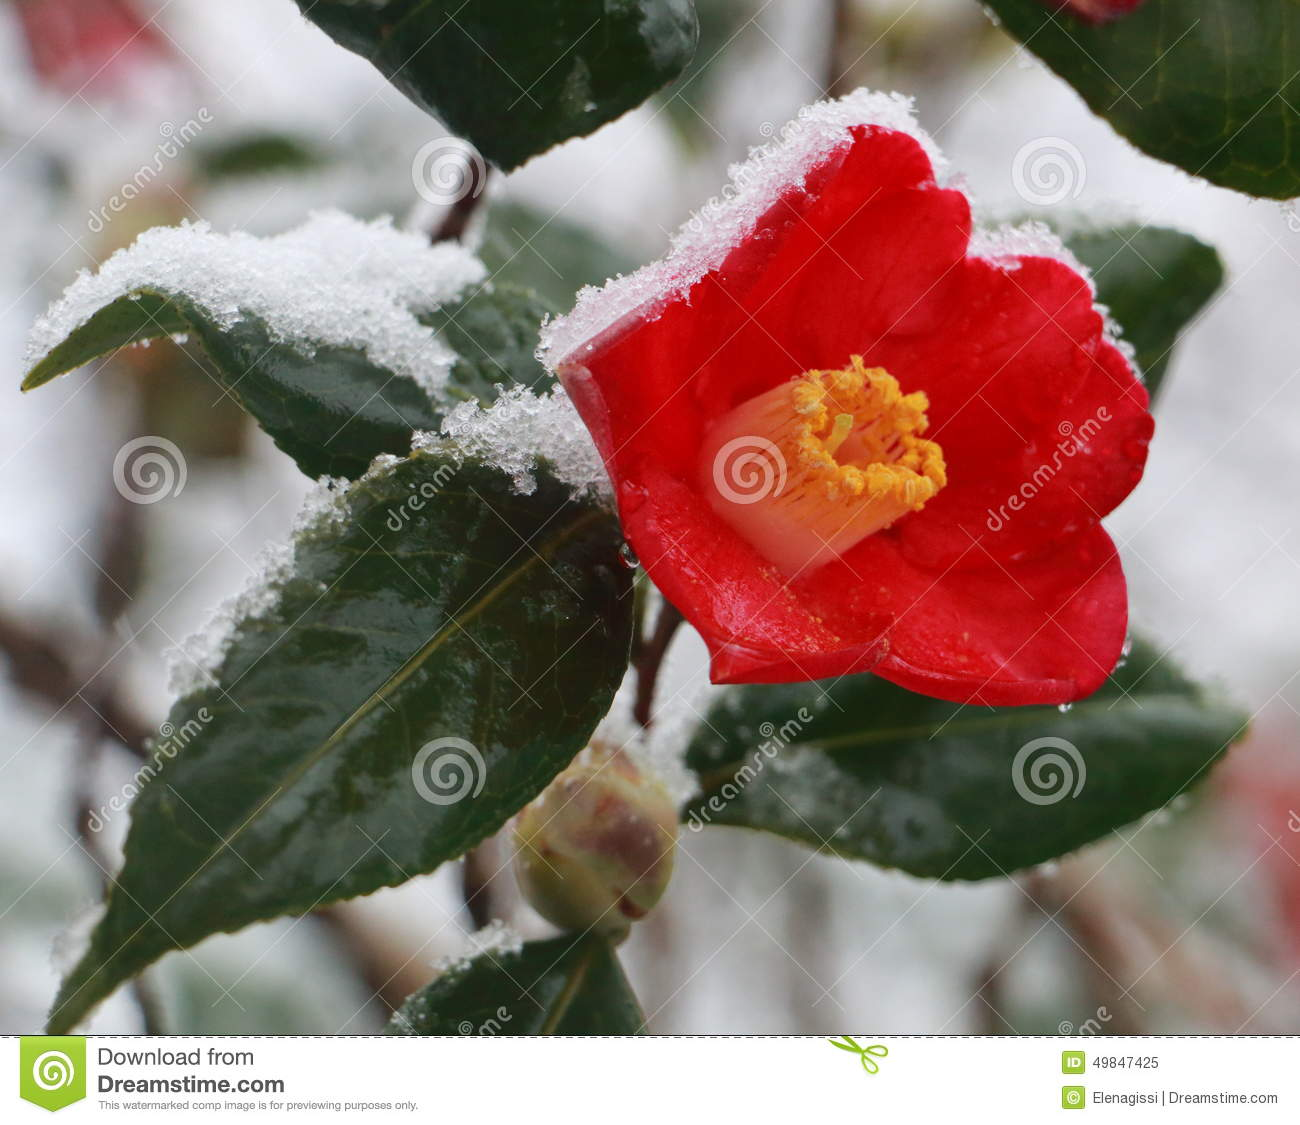 Red flower in the snow camellia japonica stock image - Camelia fotos ...